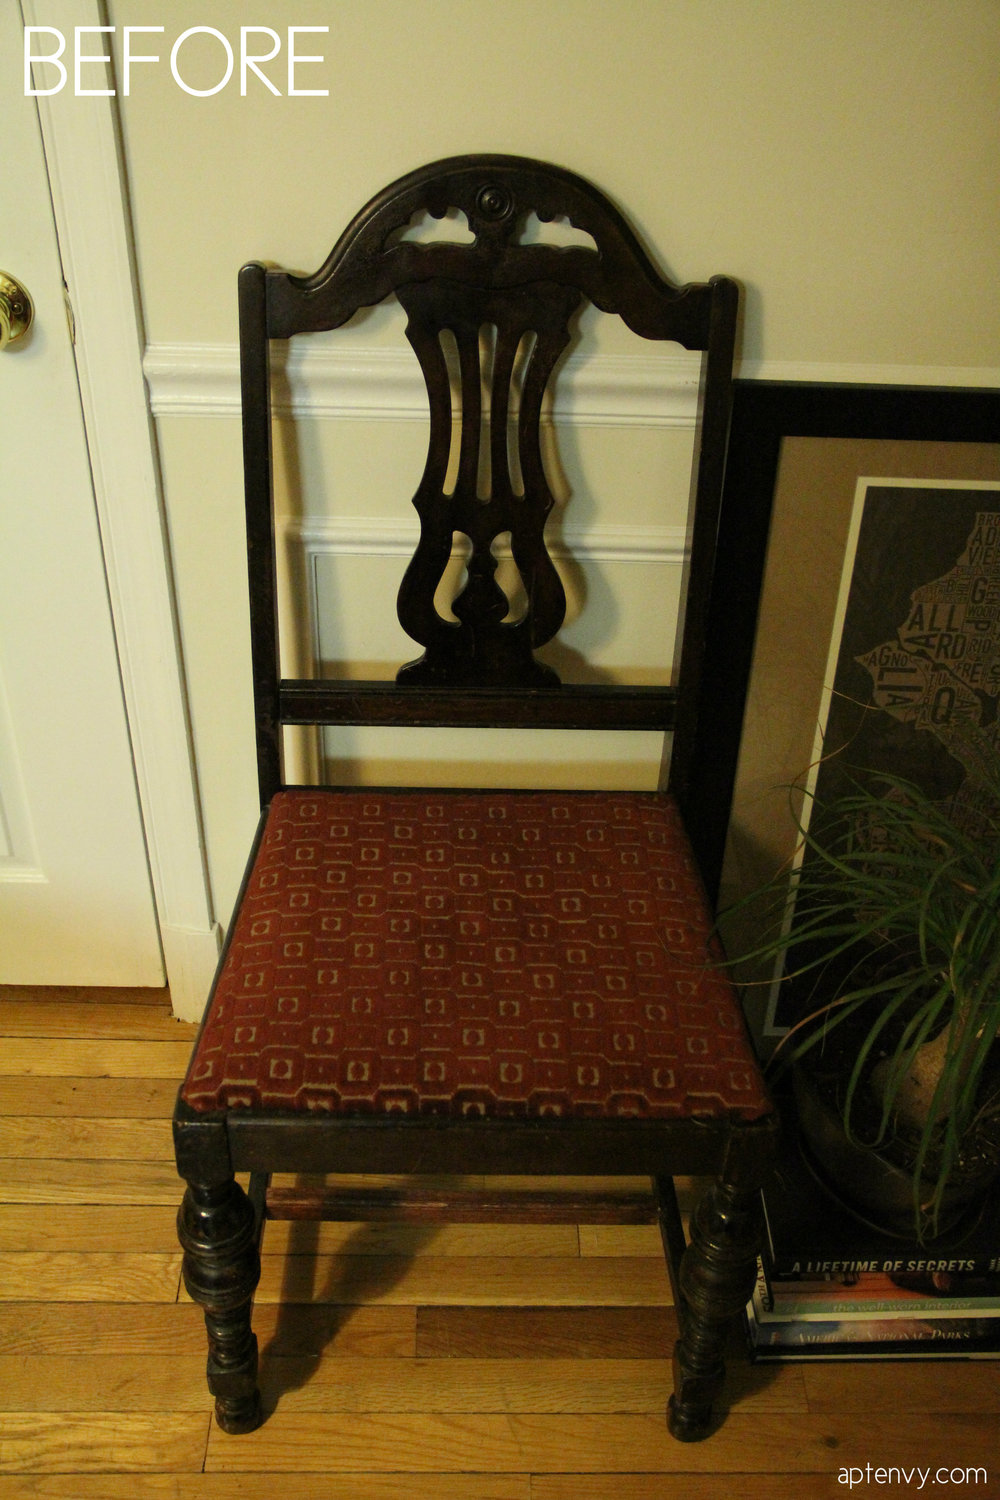 dining-chair-before.jpg